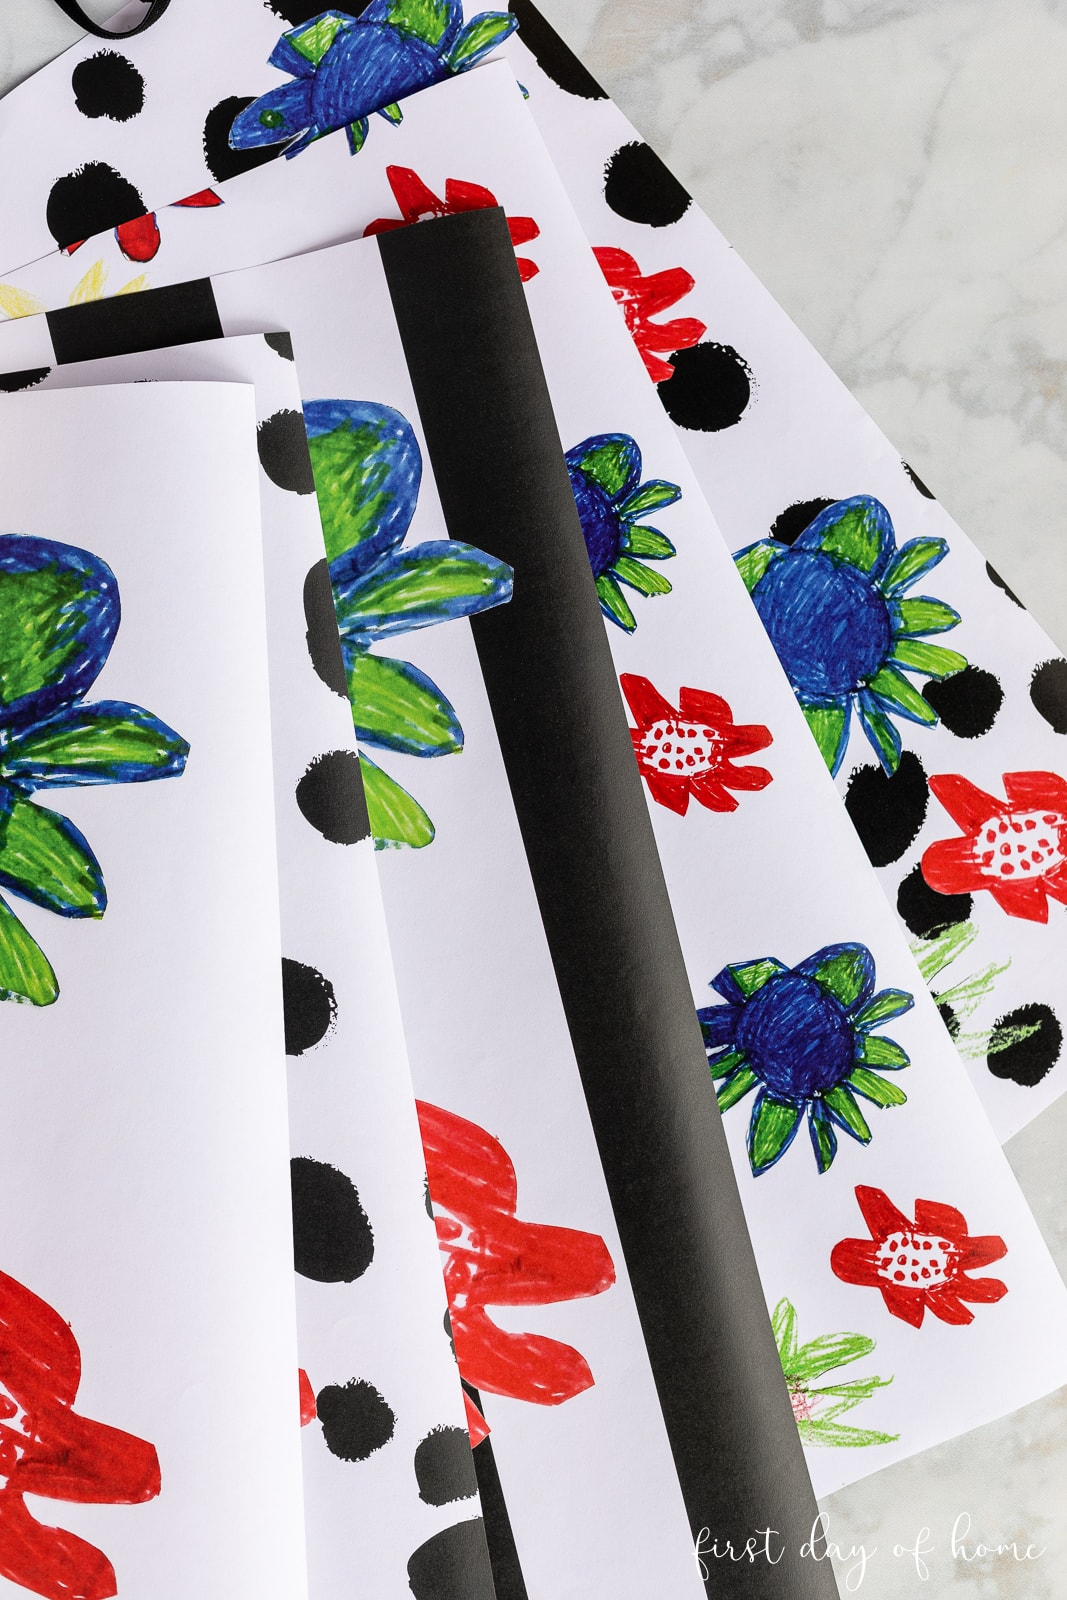 Sheets of customized DIY wrapping paper in black, white, red and green floral patterns